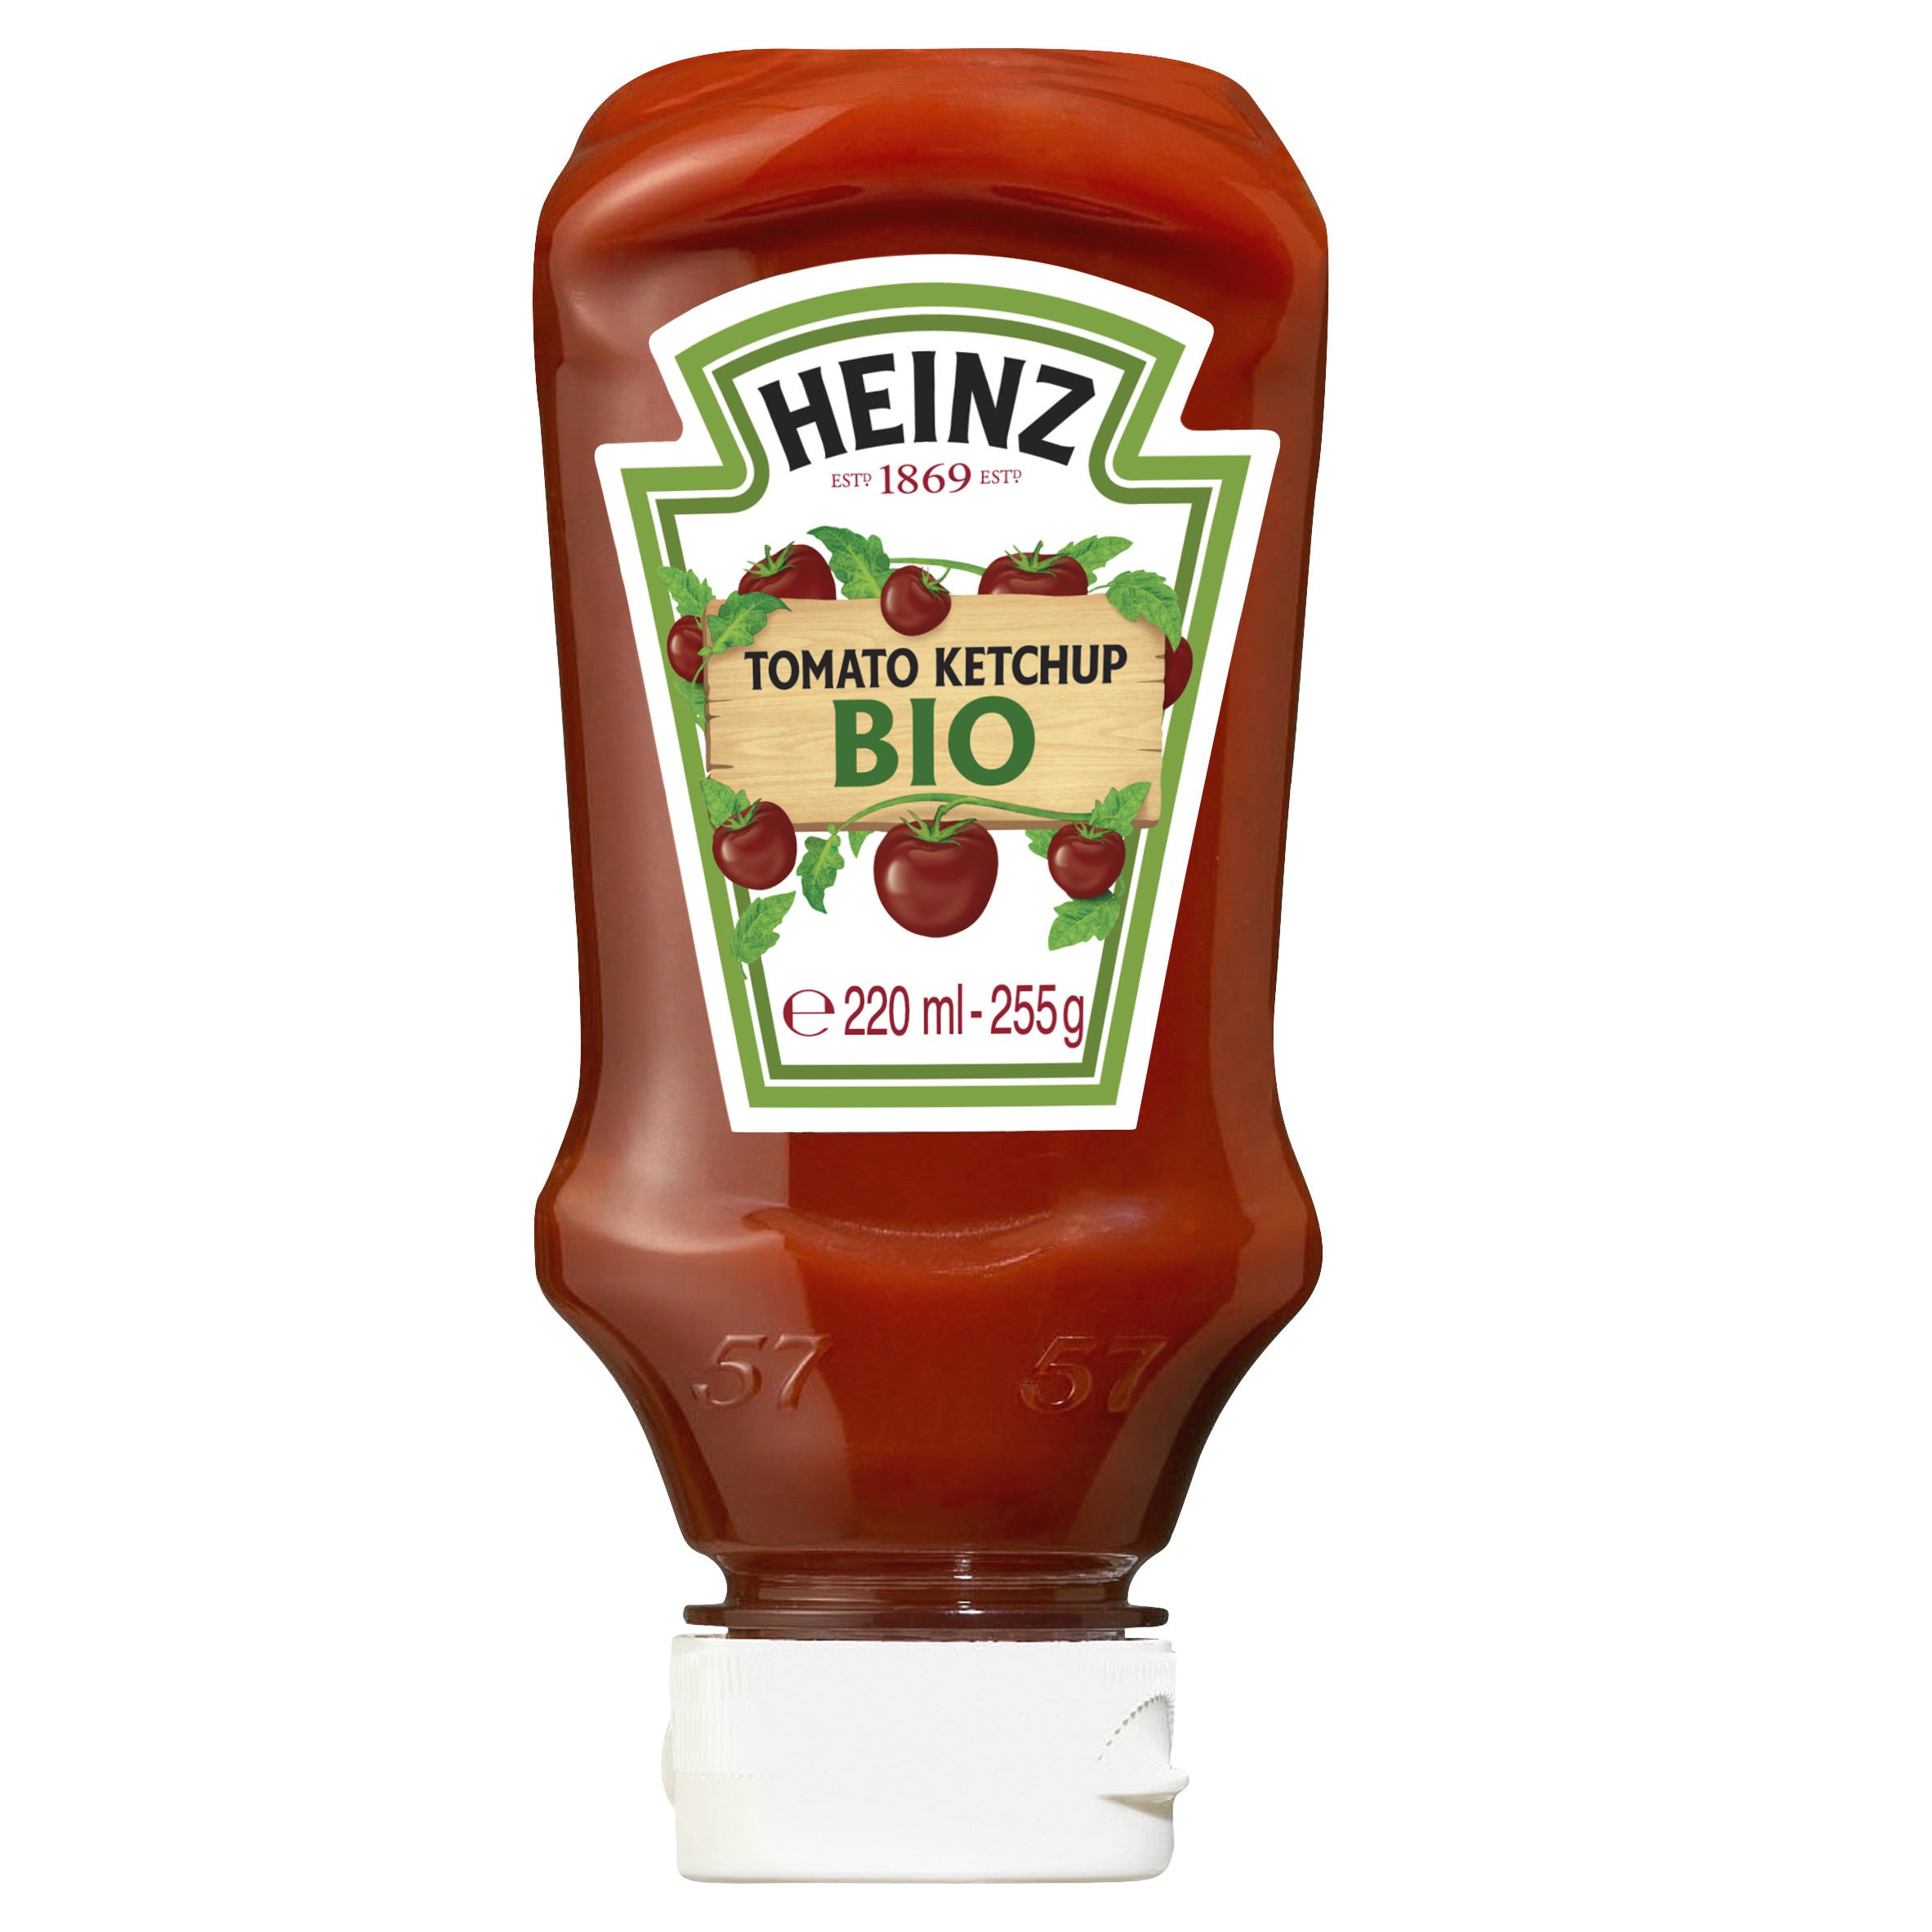 Heinz Tomato Ketchup Bio 220ml Top Down image